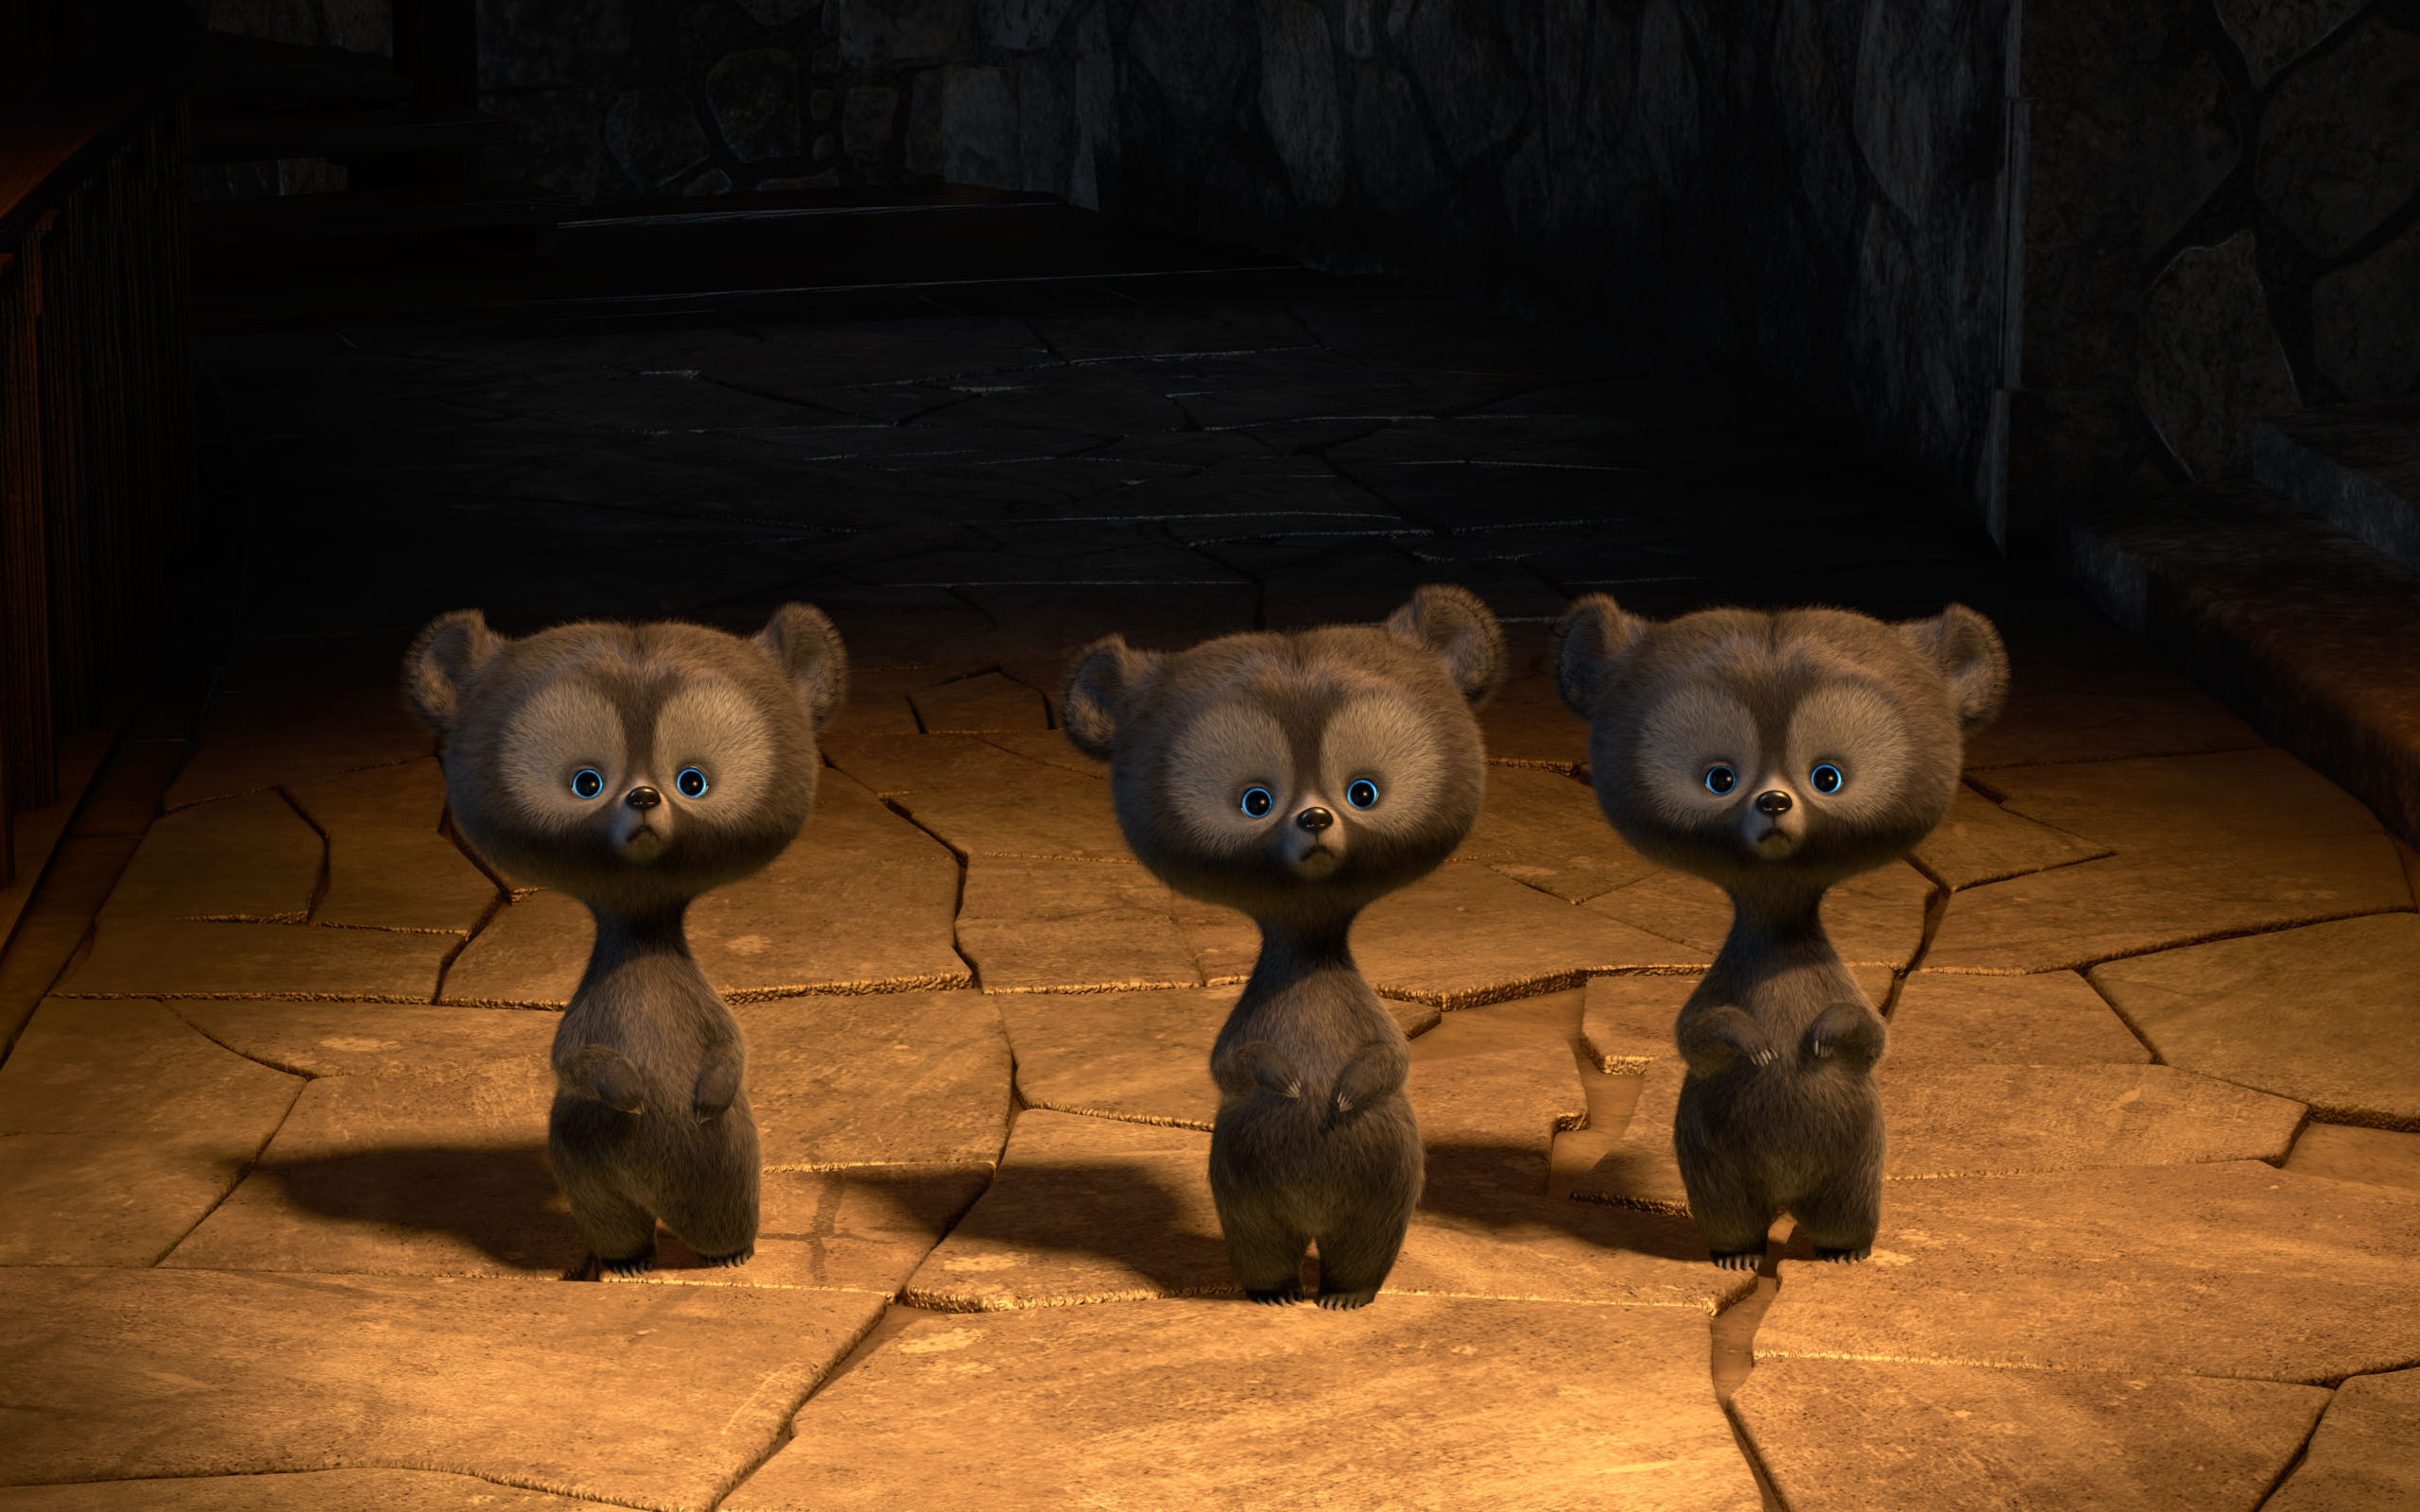 Brave Triplets Bears wallpaper